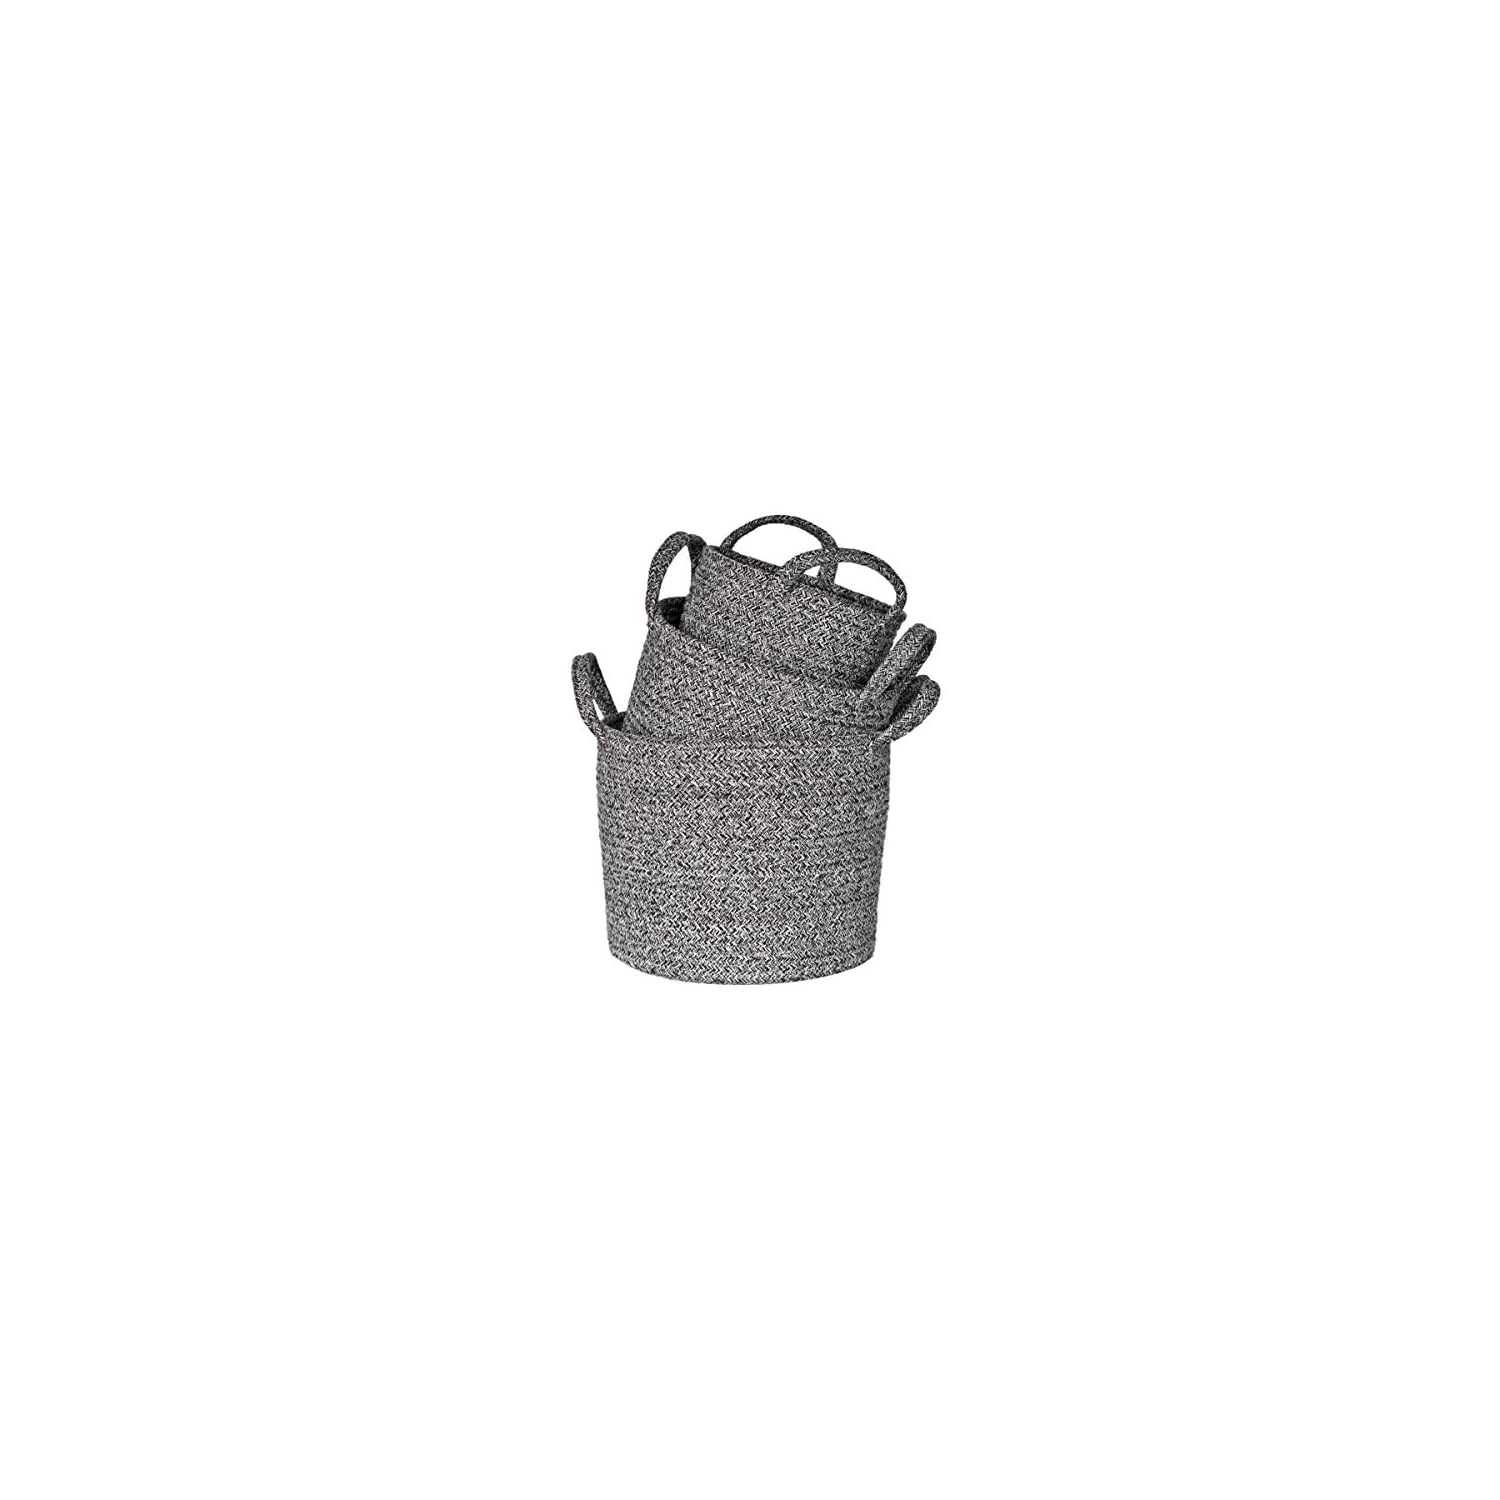 Cotton Rope Woven Basket Set of 3, Storage Basket with Handles & Decorative White Threads, Toy Basket, Laundry Basket, Plant Basket, Pet Basket, Gift Basket (Grey)